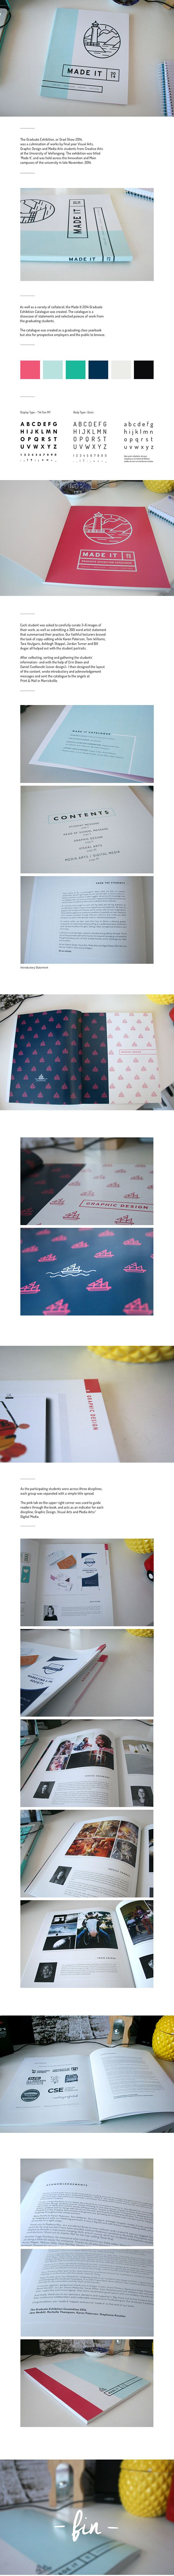 'Made It' 2014 Graduate Exhibition Catalogue on Behance